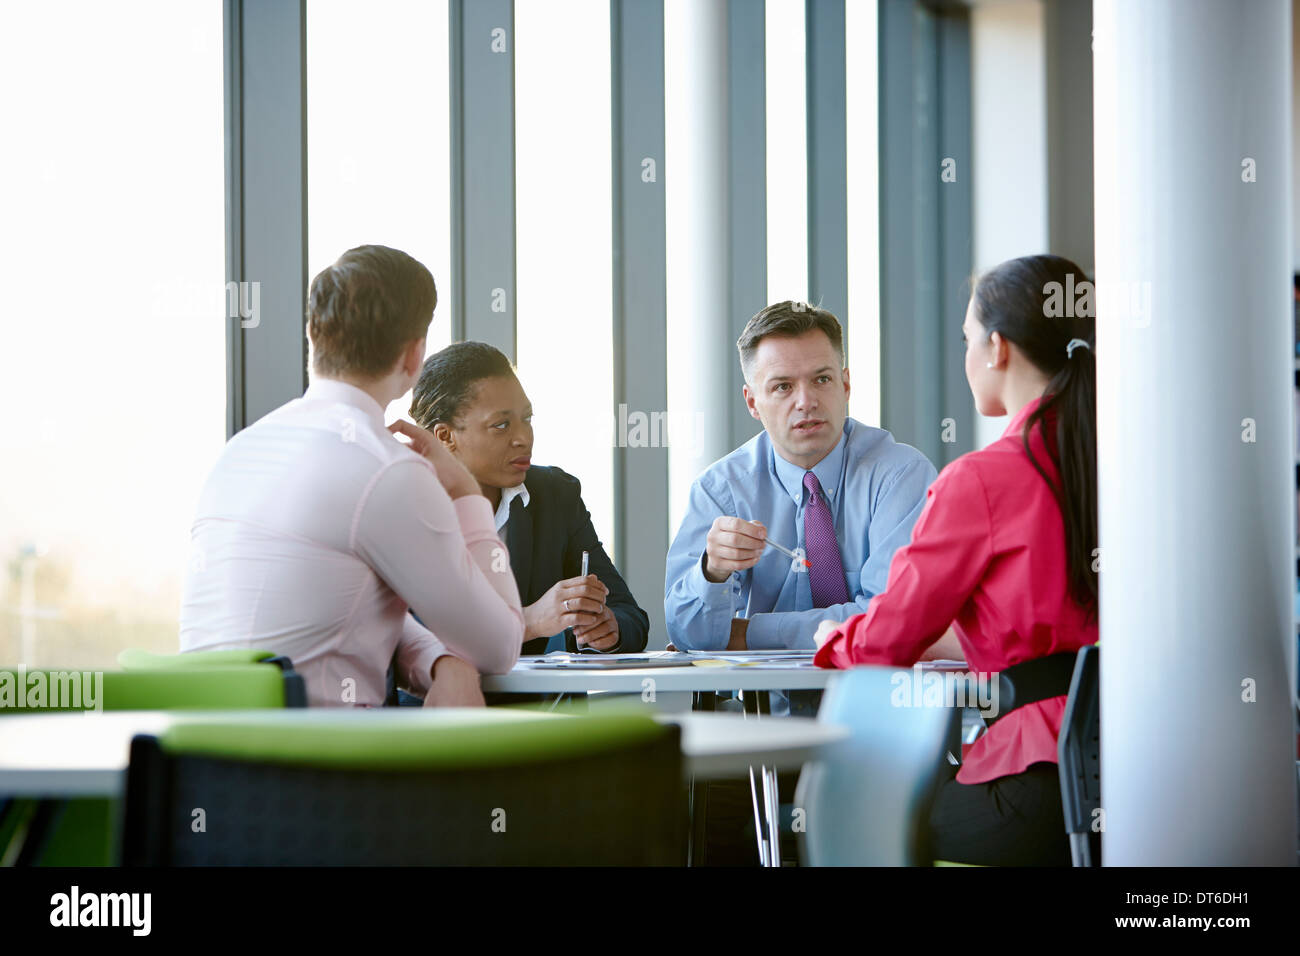 Business colleagues in meeting - Stock Image